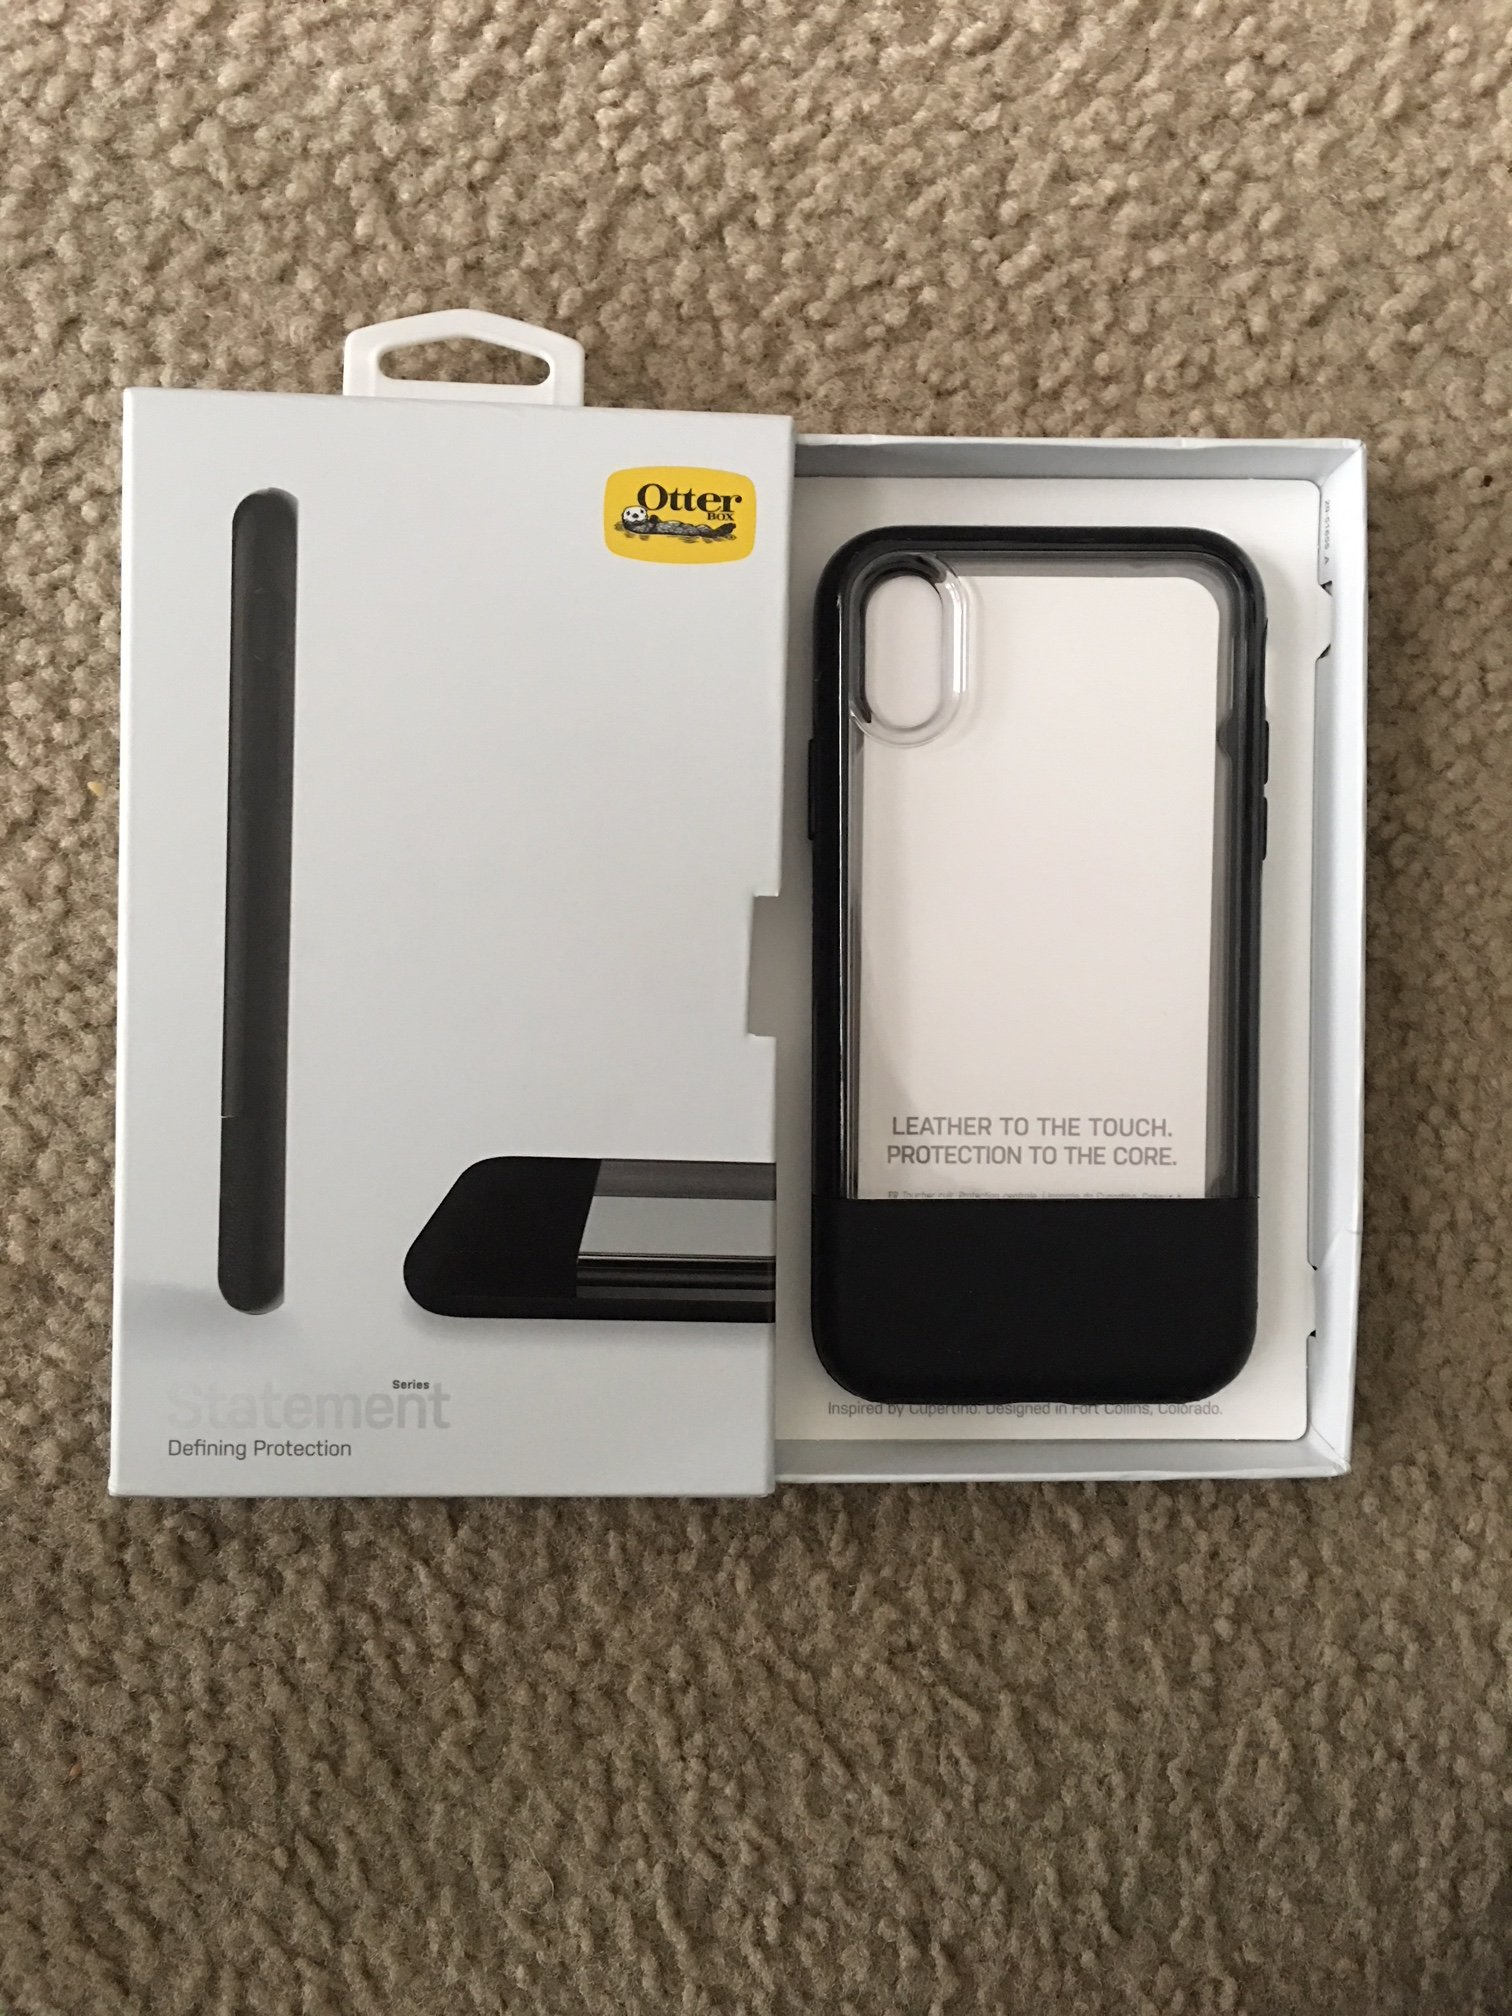 purchase cheap 34a54 887f6 Otterbox Statement for X? Worth it? | MacRumors Forums